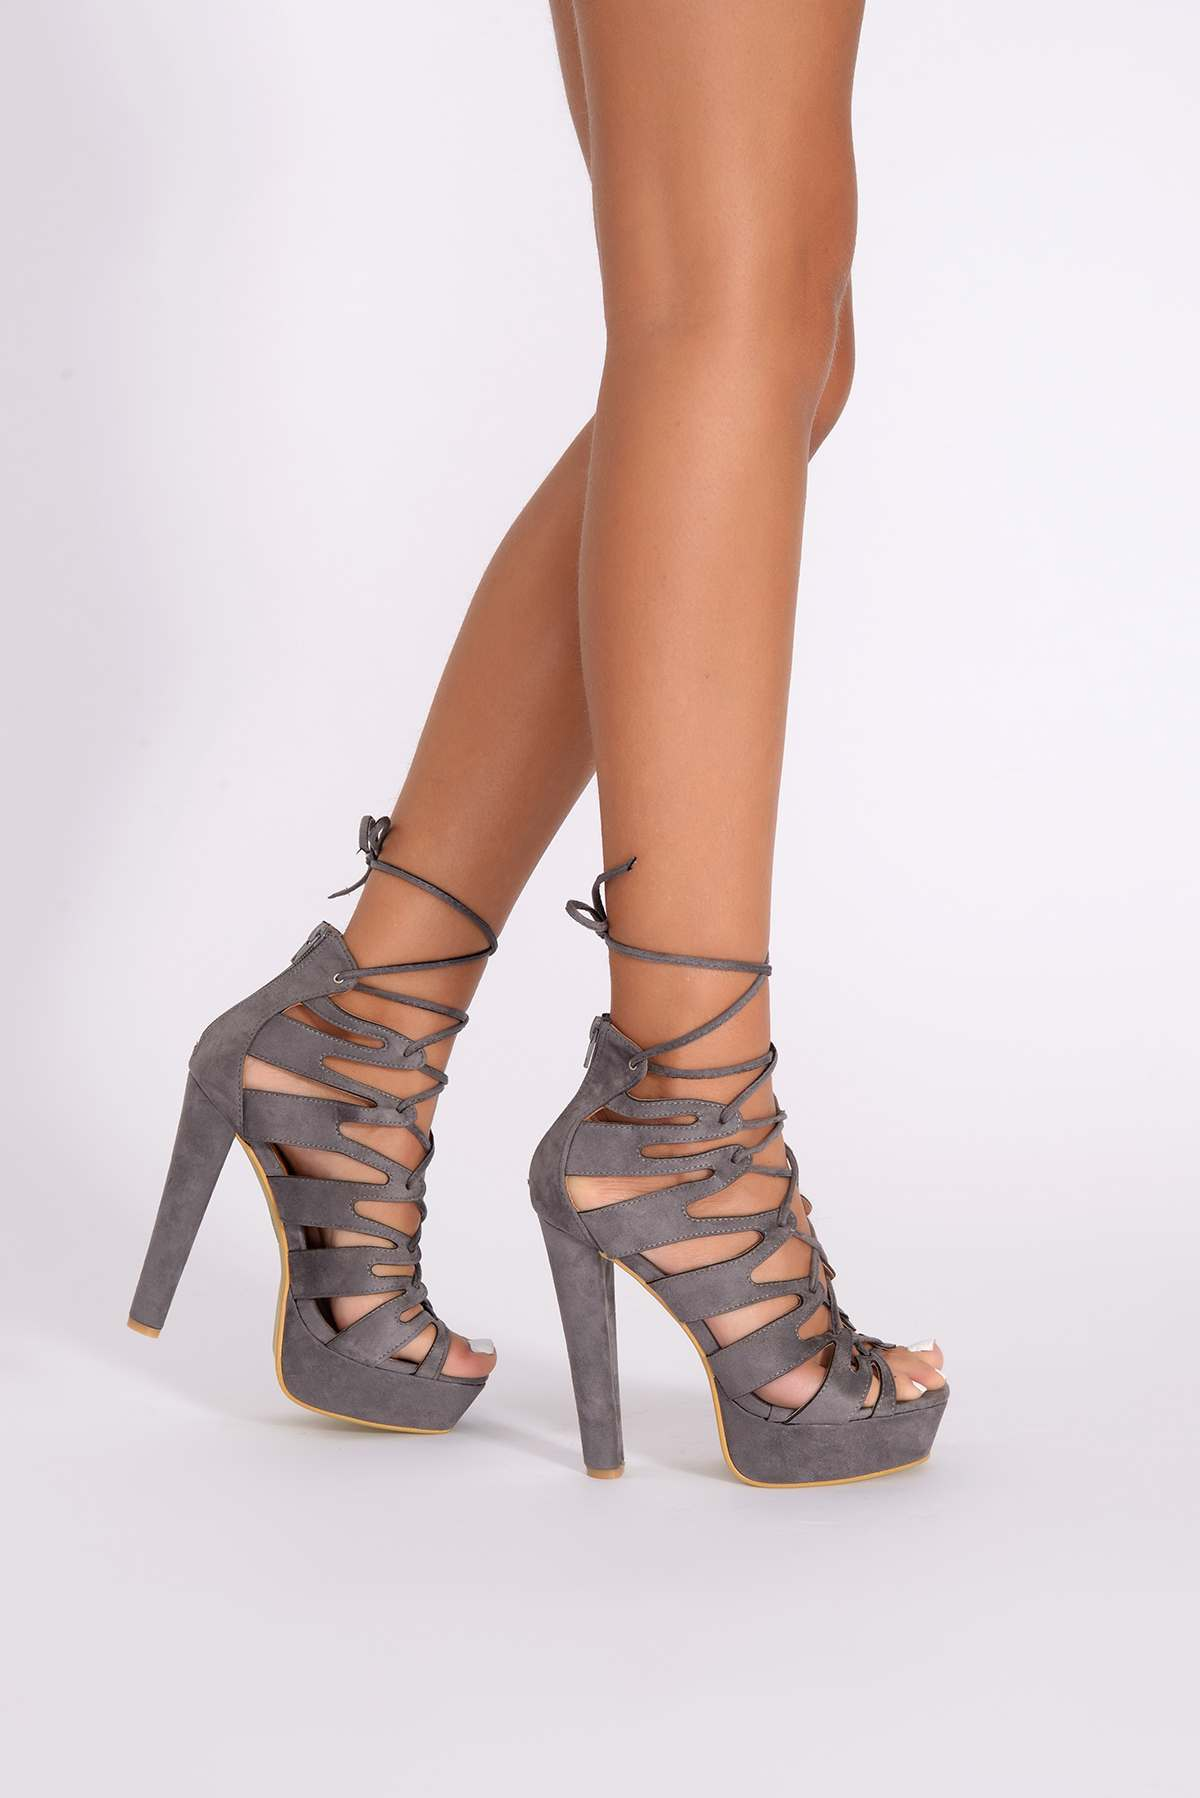 Xena Grey Faux Suede Cut Out Lace Up Heels - In The Style